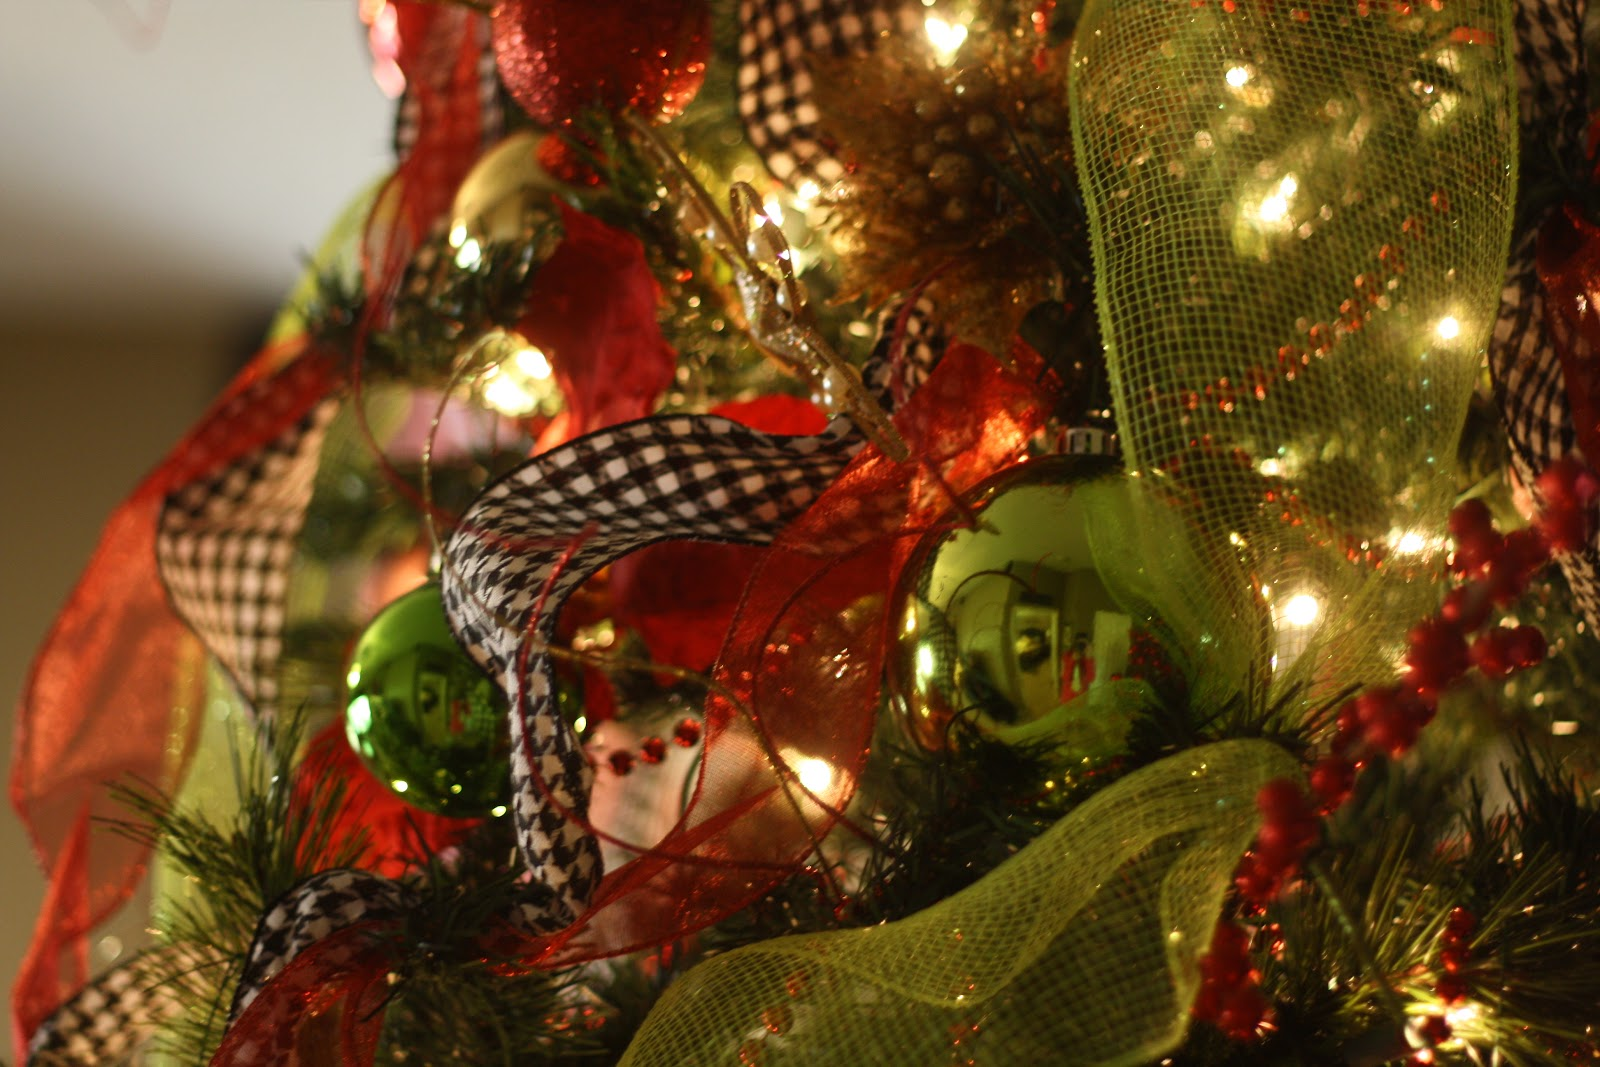 Hobby lobby glass ornaments - I Made My Topper A Little Simpler This Year And Just Did Red And Green Sprouts I Re Used The Red Sprouts And Added The Green Twirly Sprouts That I Got At